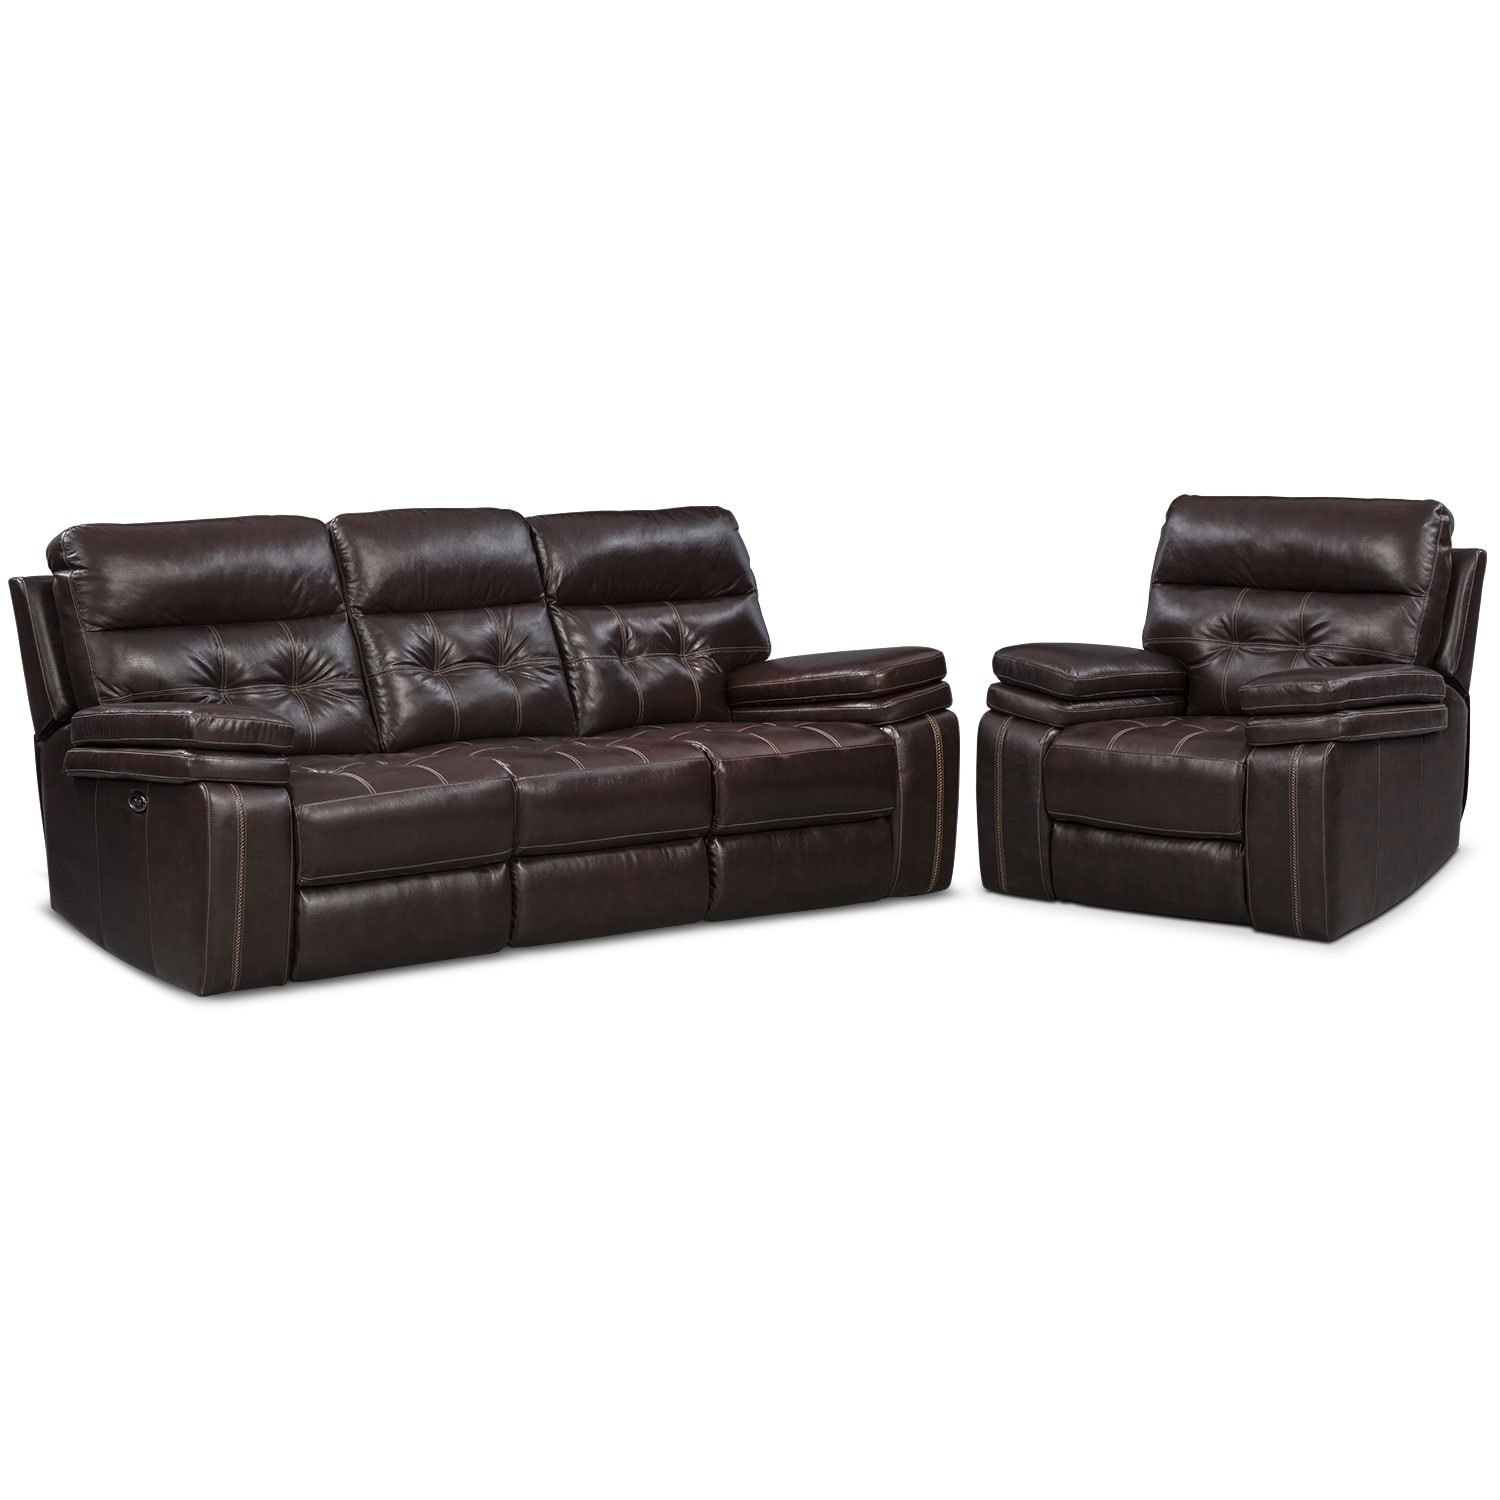 Living Room Furniture - Brisco Dual-Power Reclining Sofa and Recliner Set